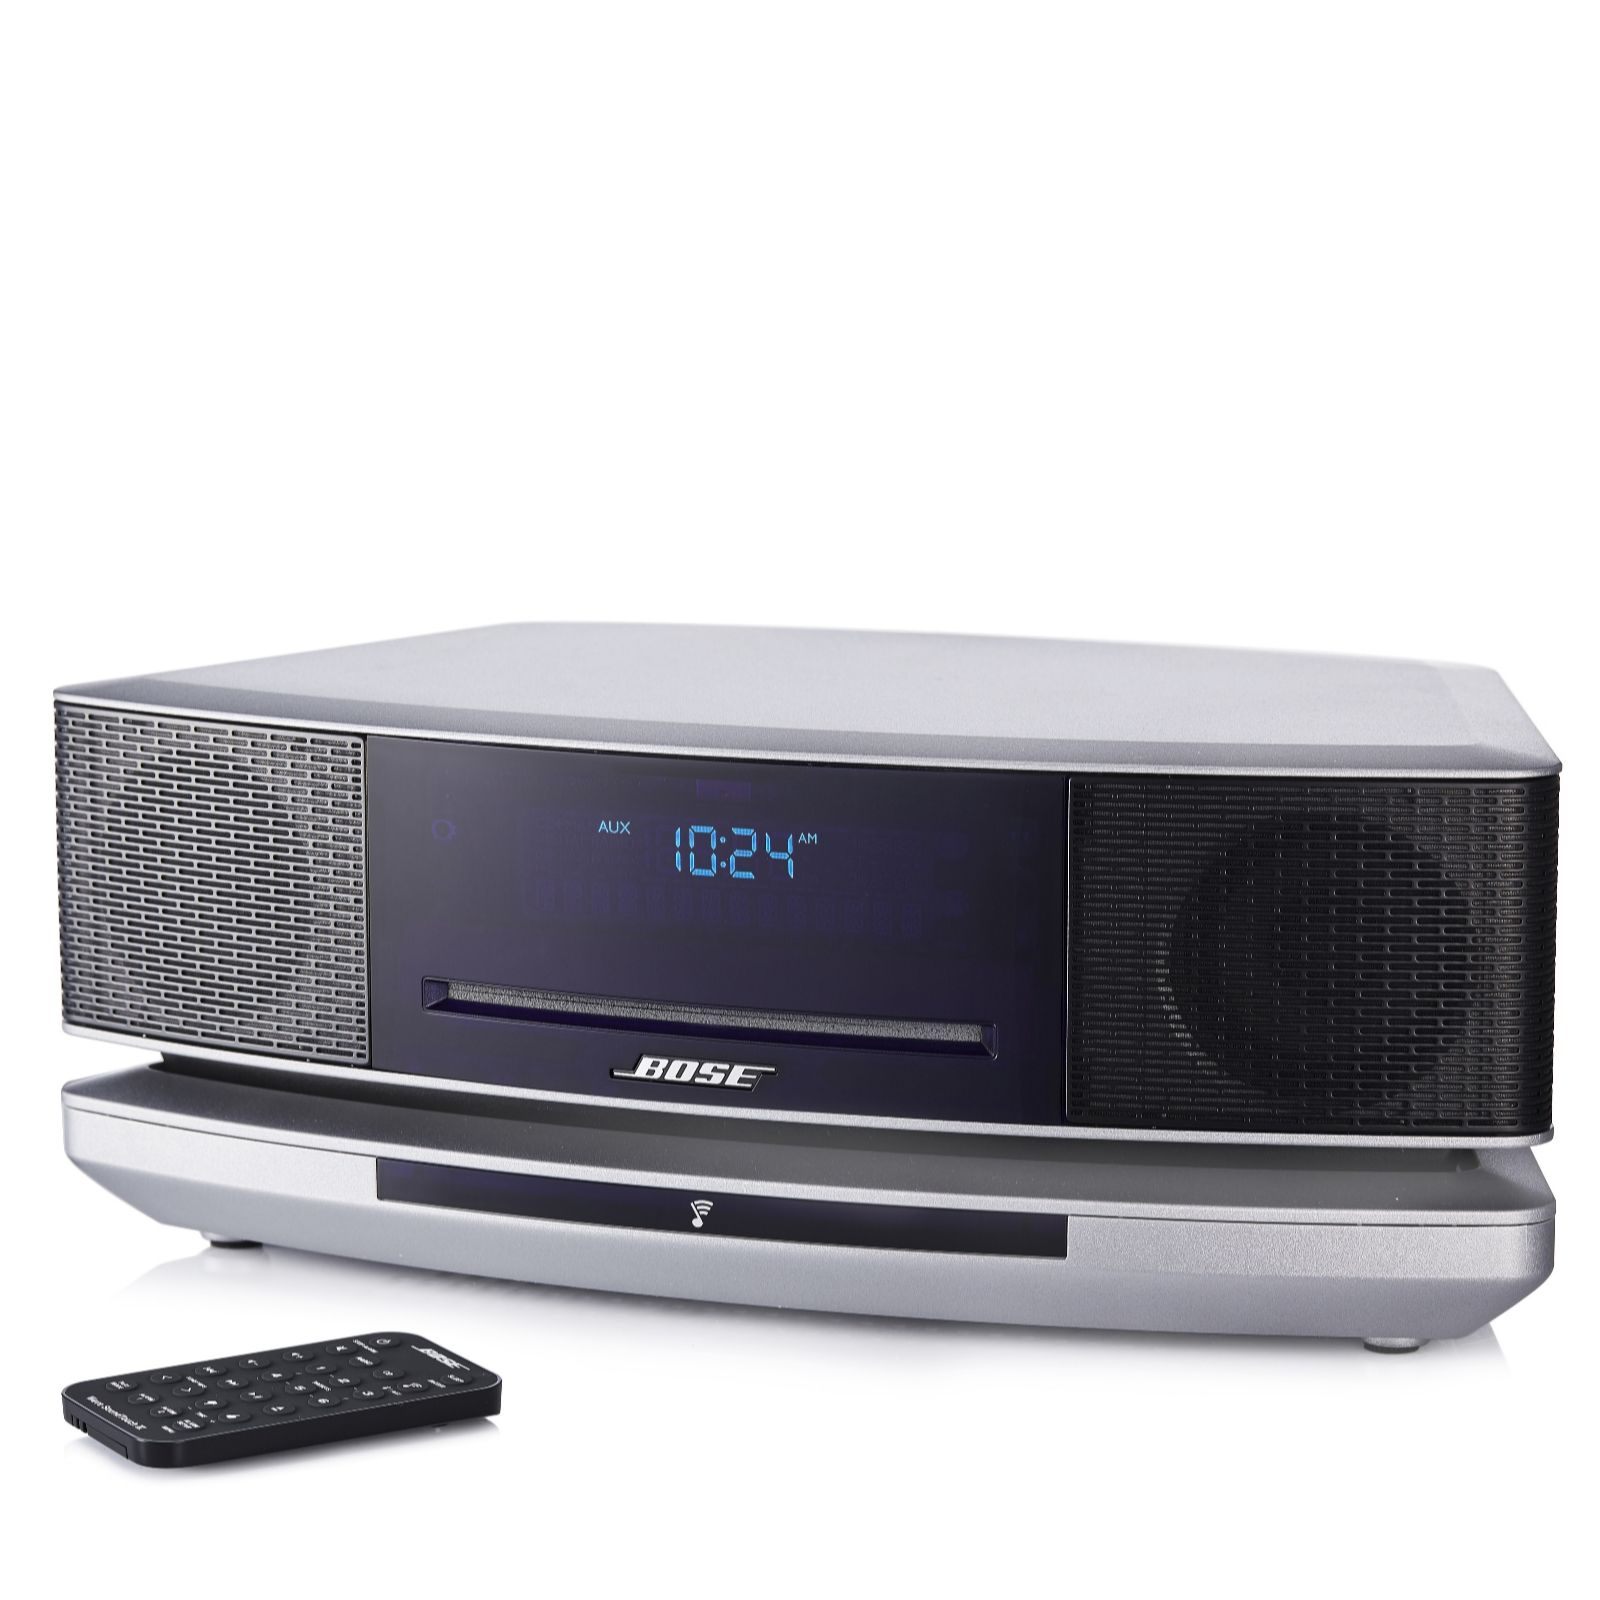 bose music system. bose soundtouch wave music system iv with dab/fm radio, cd player \u0026 bluetooth - page 1 qvc uk